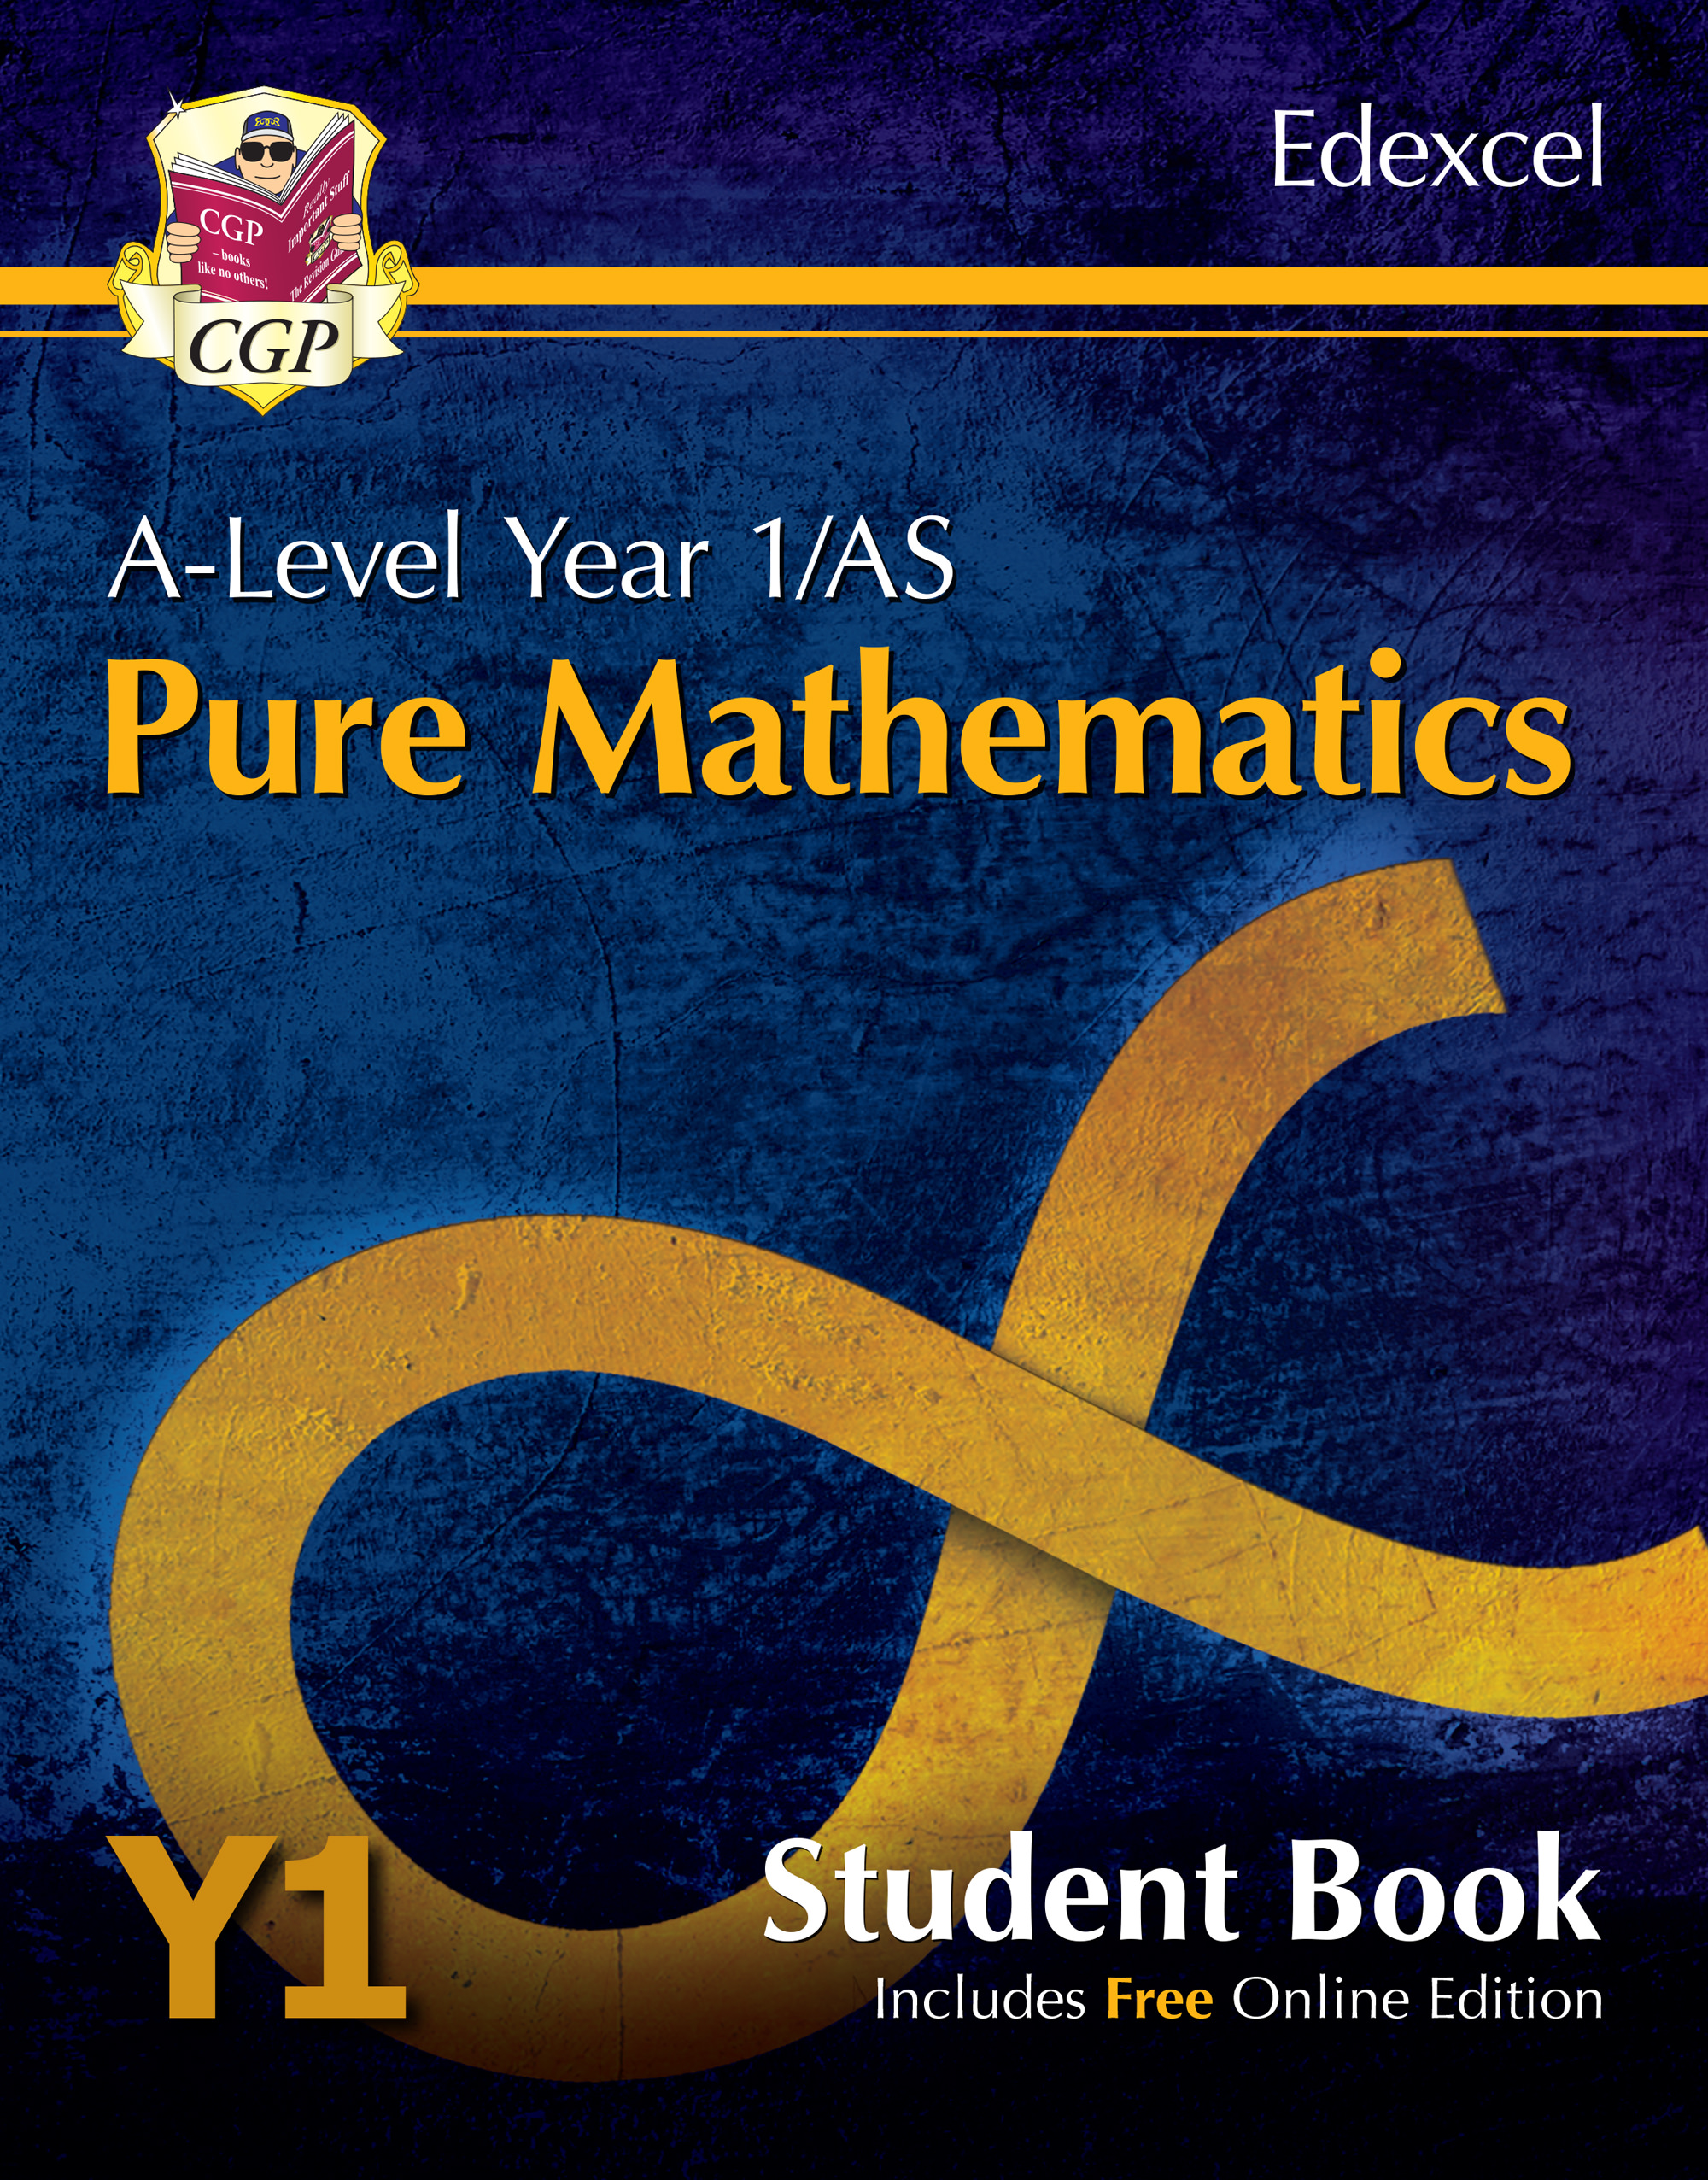 MEPMT51 - New A-Level Maths for Edexcel: Pure Mathematics - Year 1/AS Student Book (with Online Edit